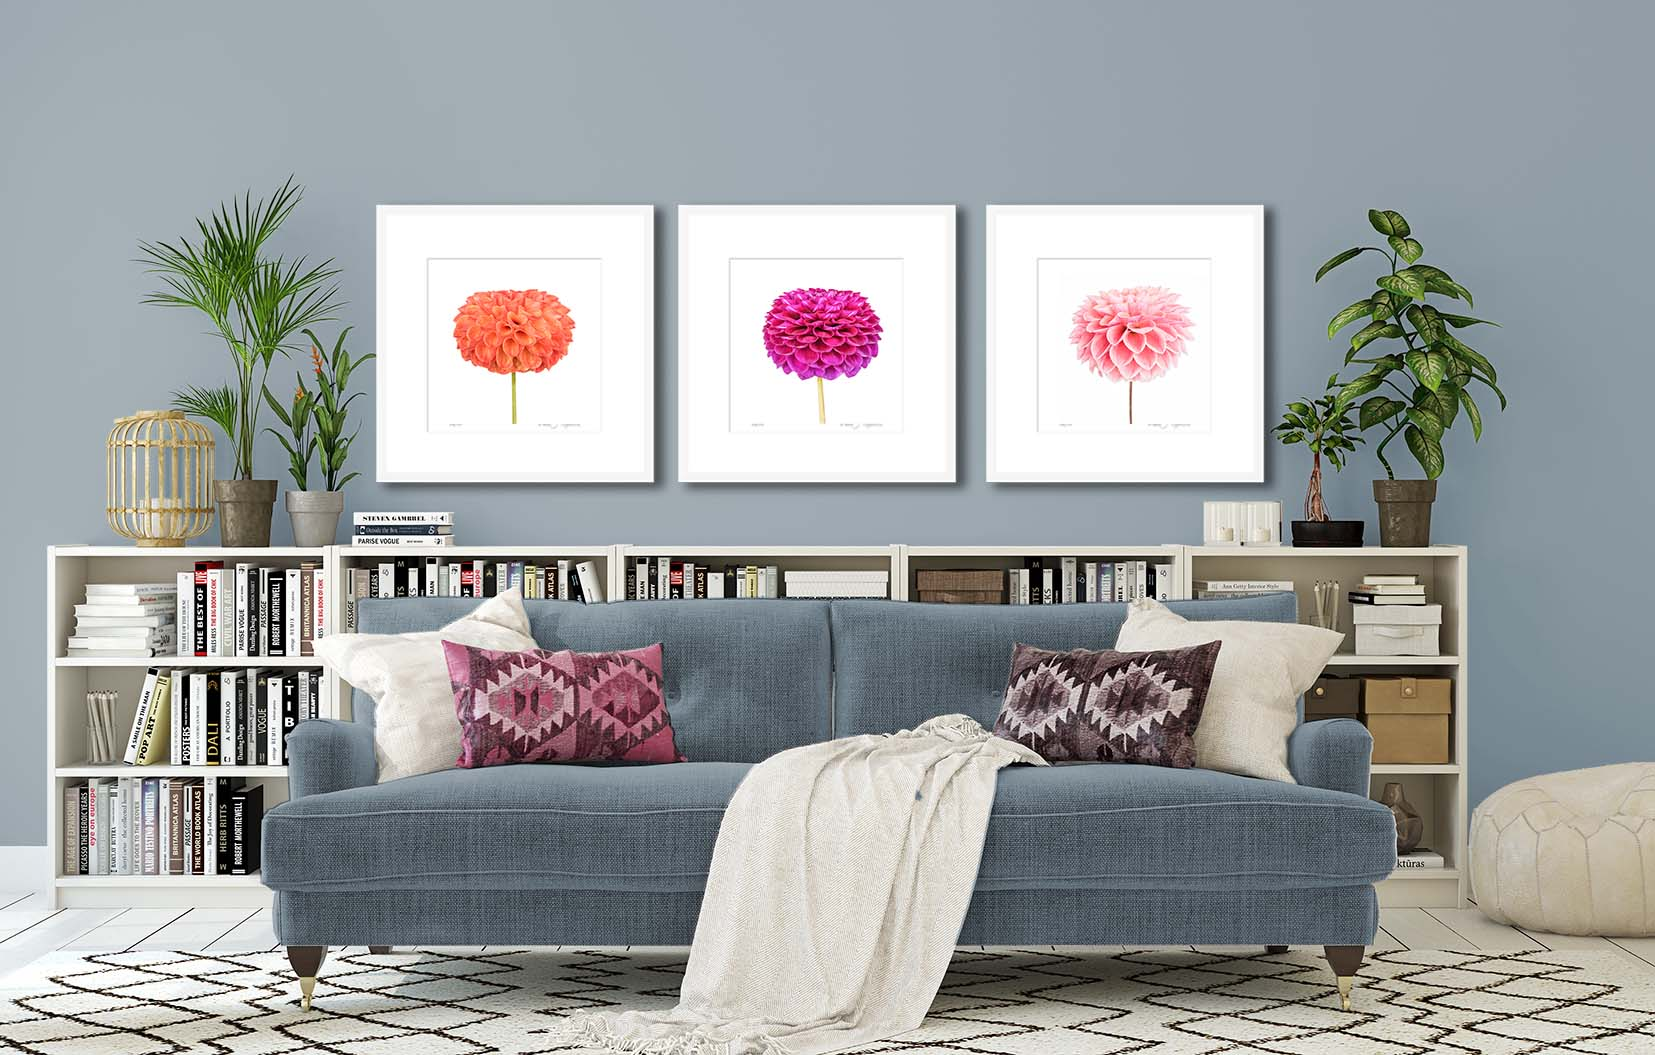 Dahlia 'Peach Cupid' II. Limited edition floral print of a dahlia by fine art photographer Paul Coghlin.